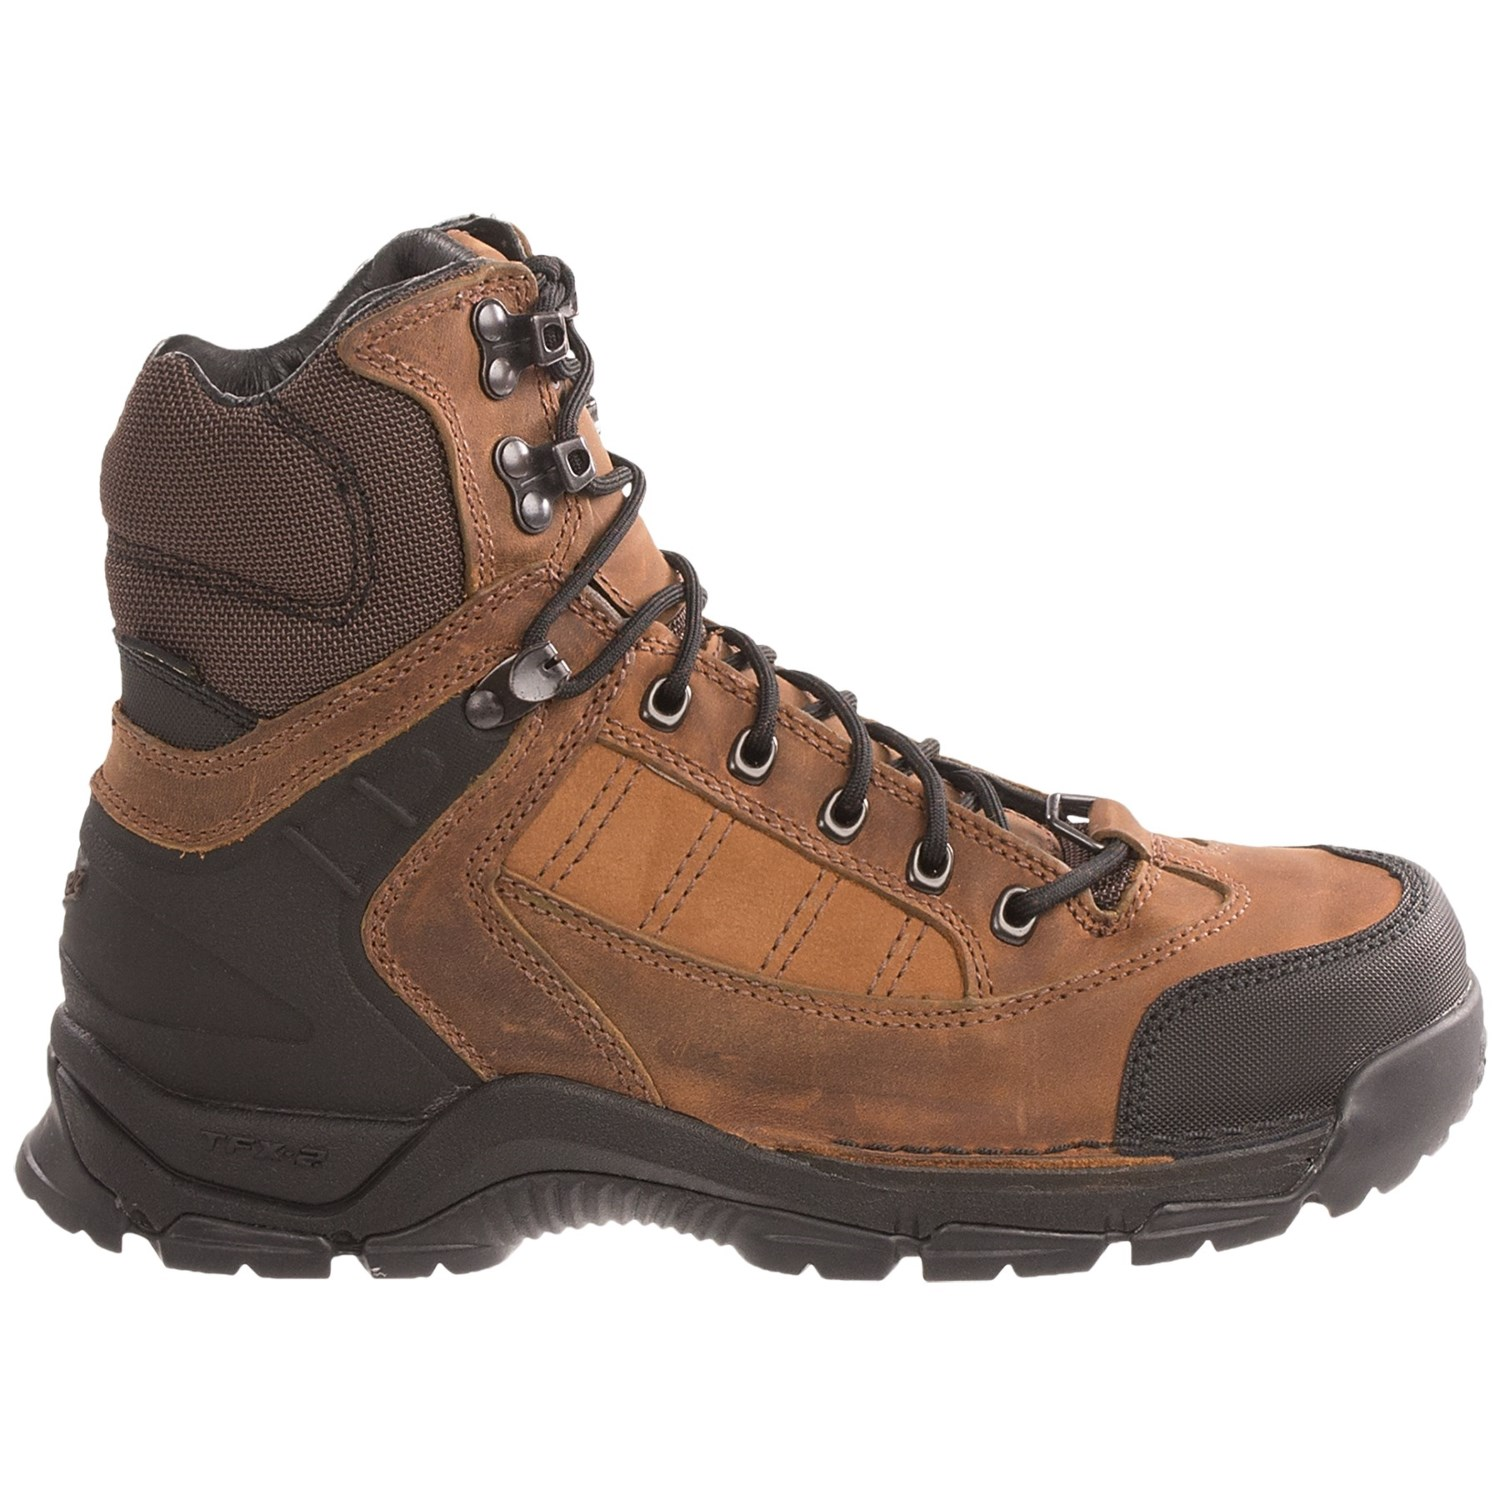 Excellent Womenu0026#39;s Danner 3u0026quot; Waterproof St. Helenu0026#39;s GORE-TEX XCR Low Hiking Boots - 625852 Hiking Boots ...